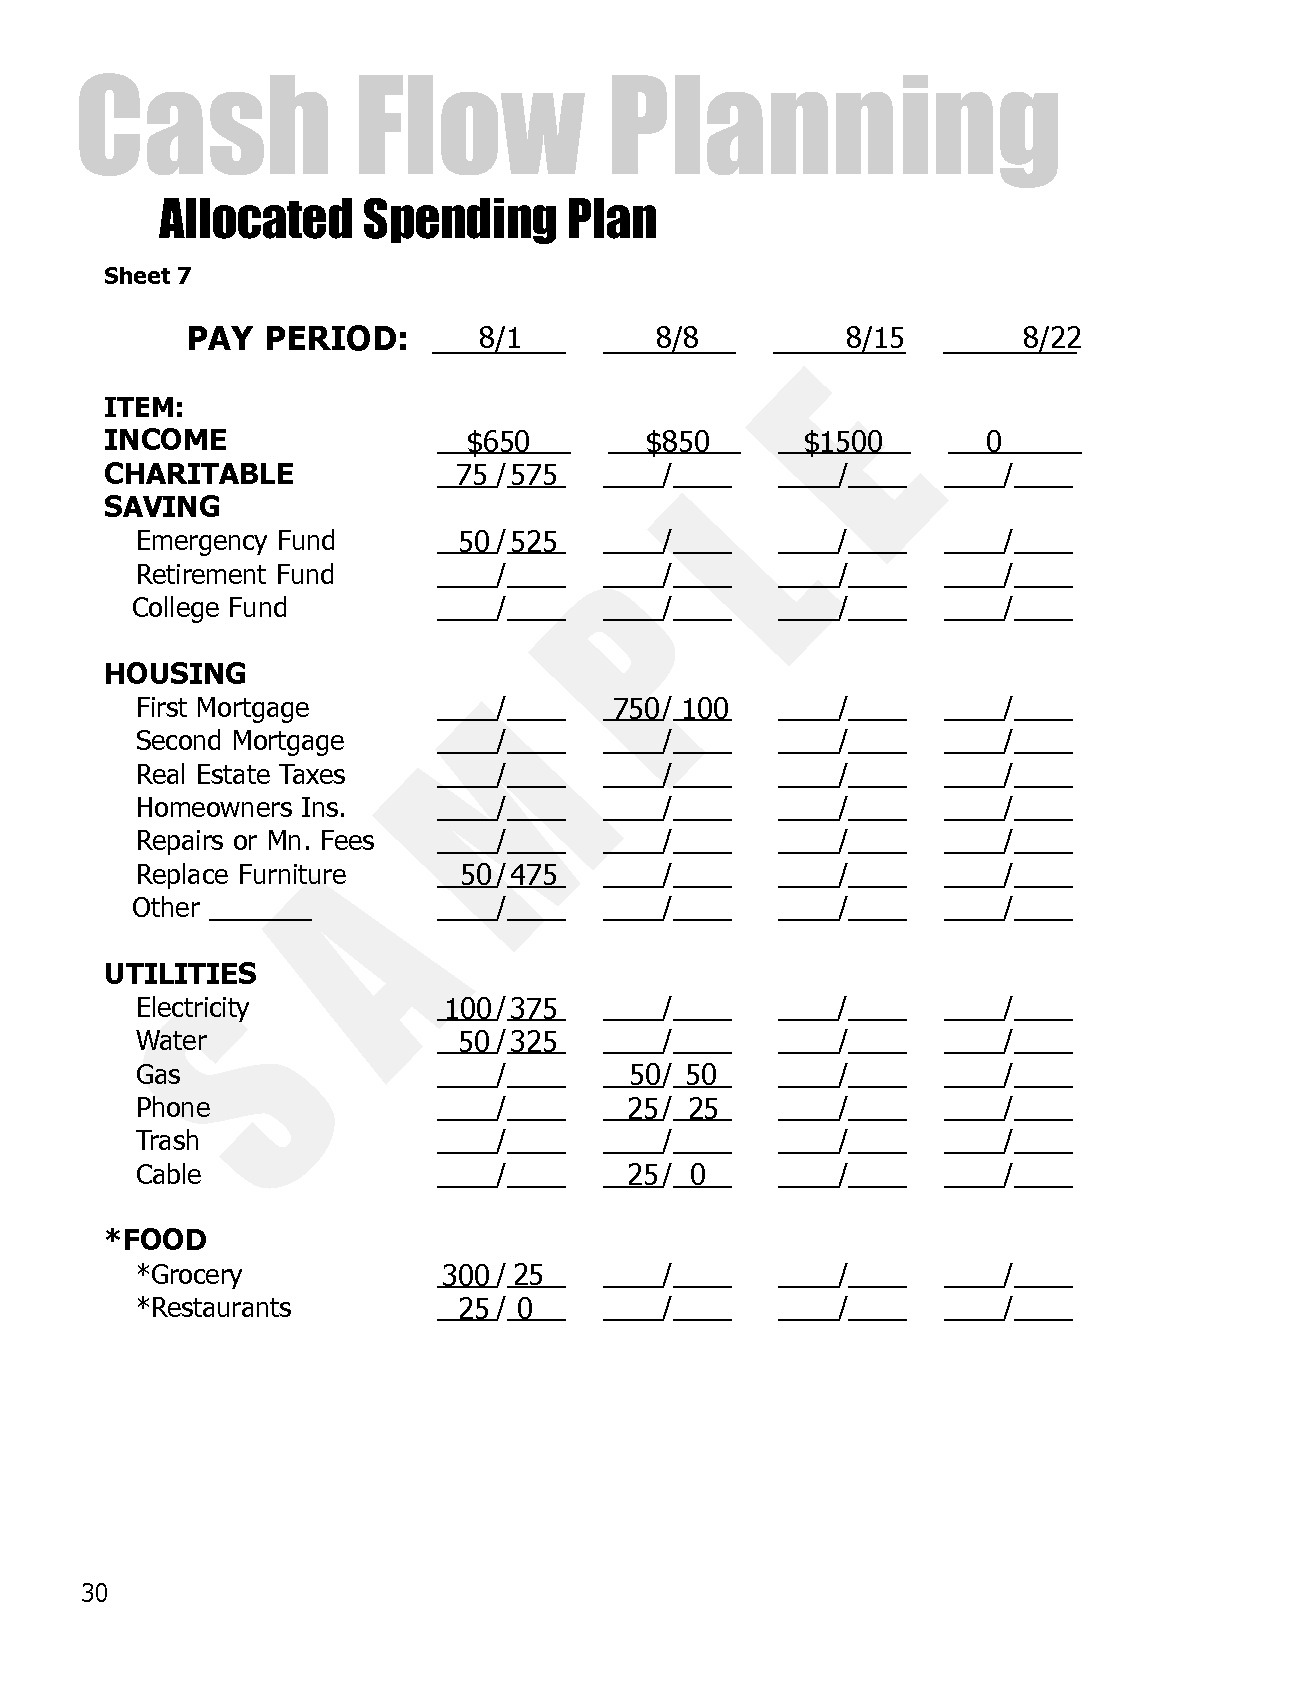 Worksheets Dave Ramsey Worksheets how to use dave ramseys allocated spending plan ramsey worksheets worksheet